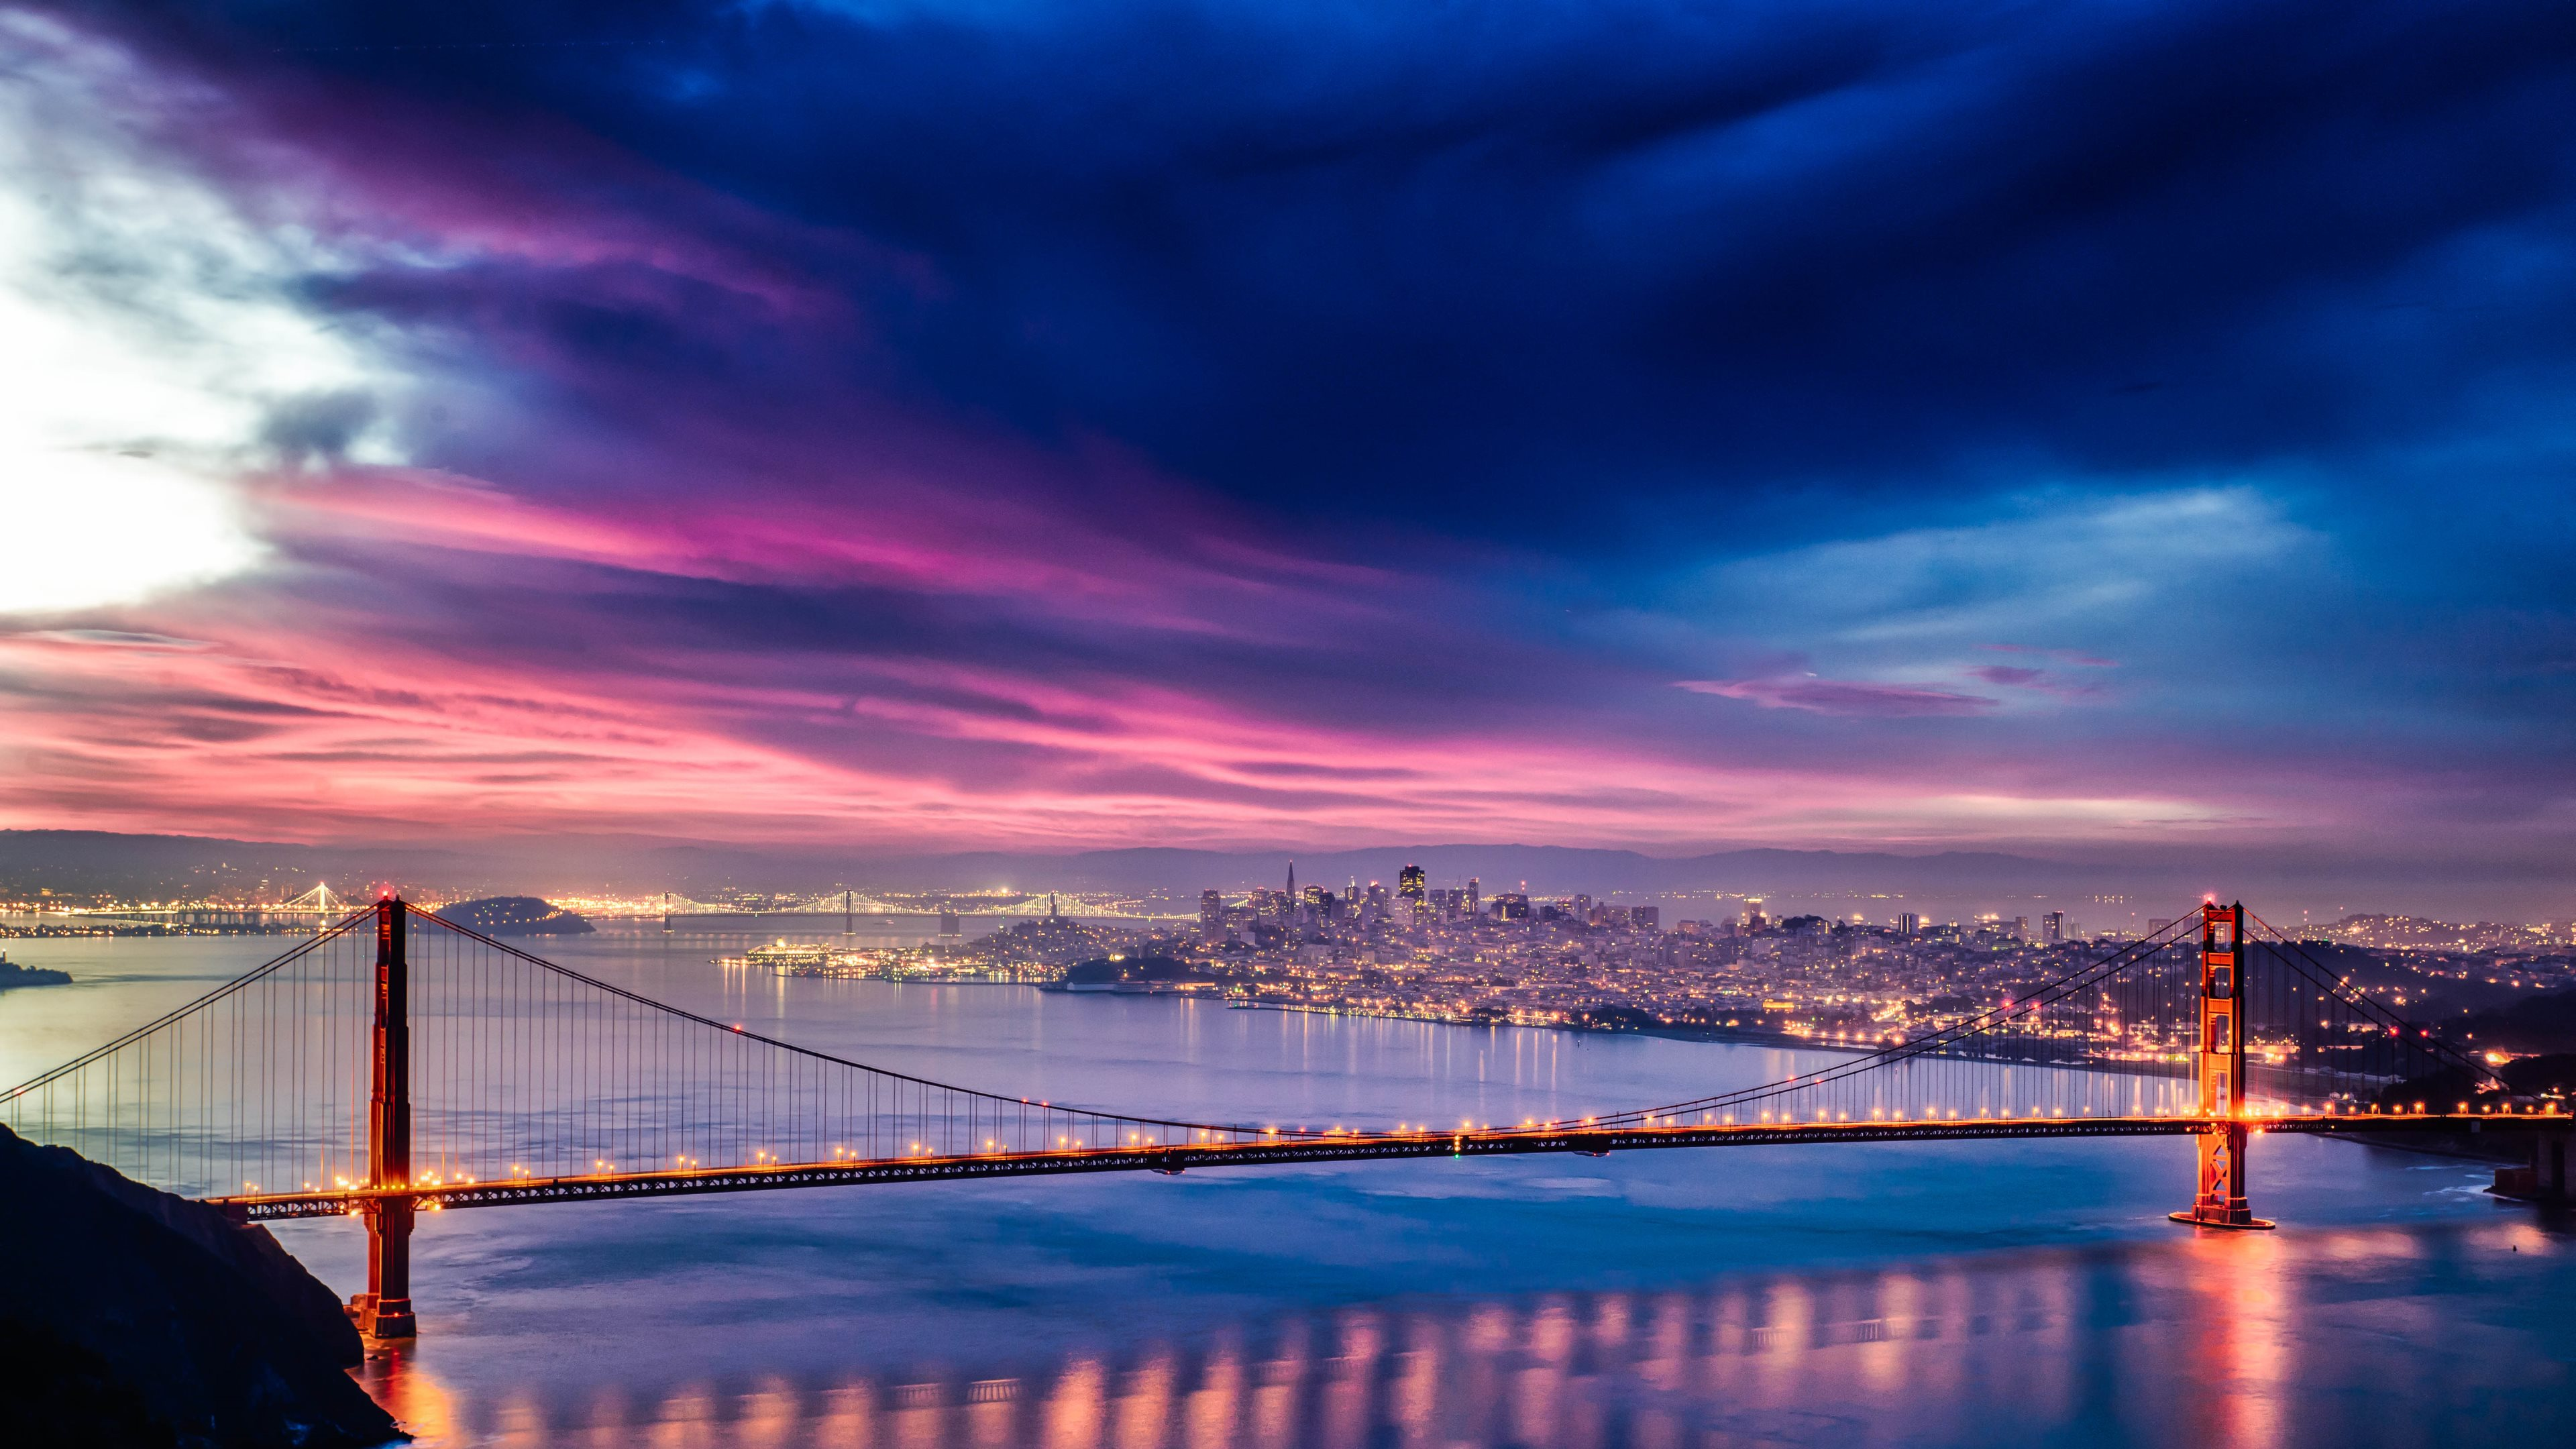 Skyfire over San Francisco Bay Bridge Wallpapers HD Wallpapers 3840x2160